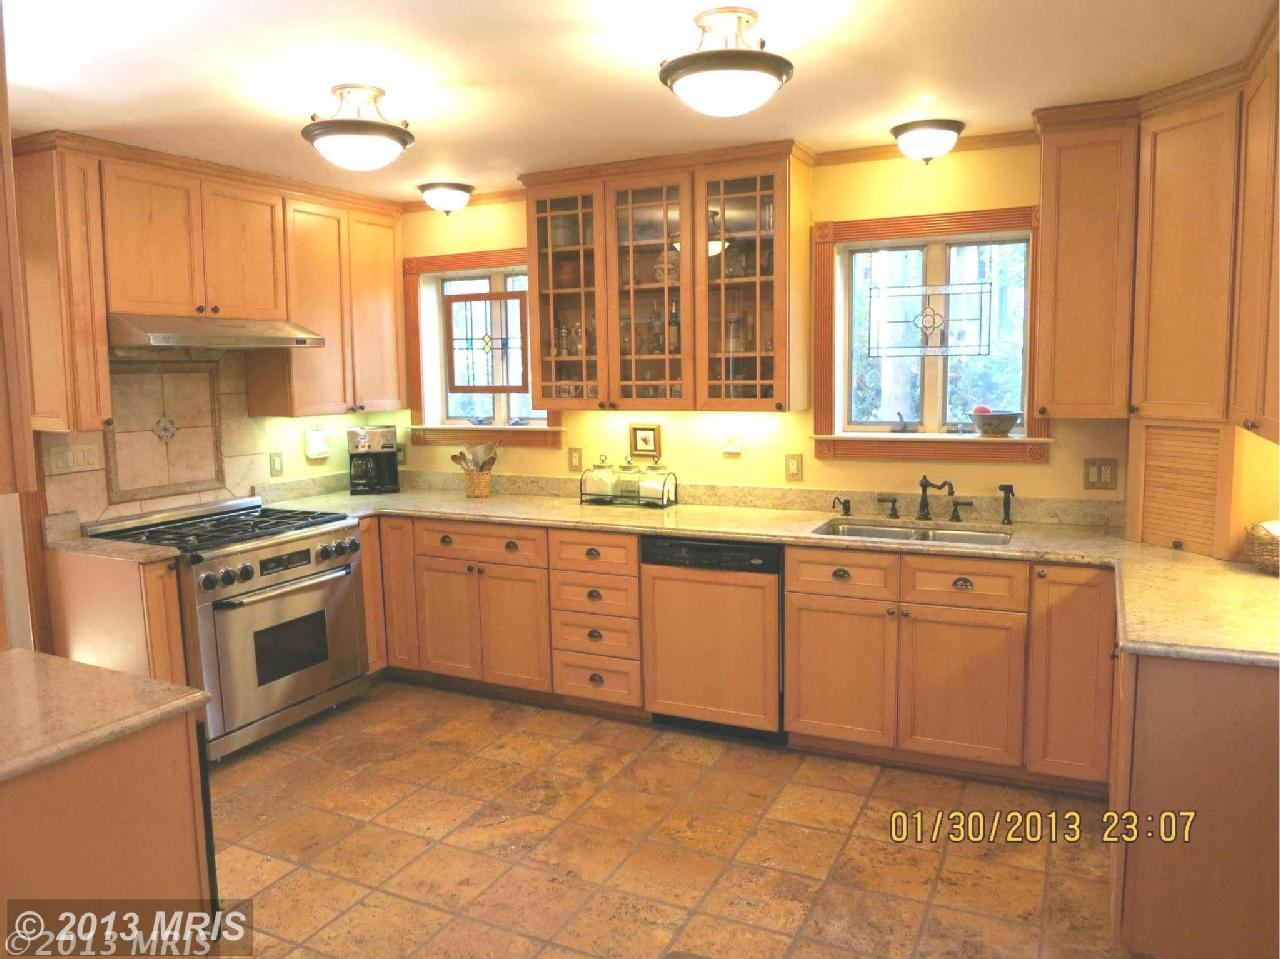 It S A Nice Kitchen But It S Just Not My Taste Really The Whole House Isn T Exactly My Taste Right Now It Could Easily Pass As A Nice Hunting Lodge